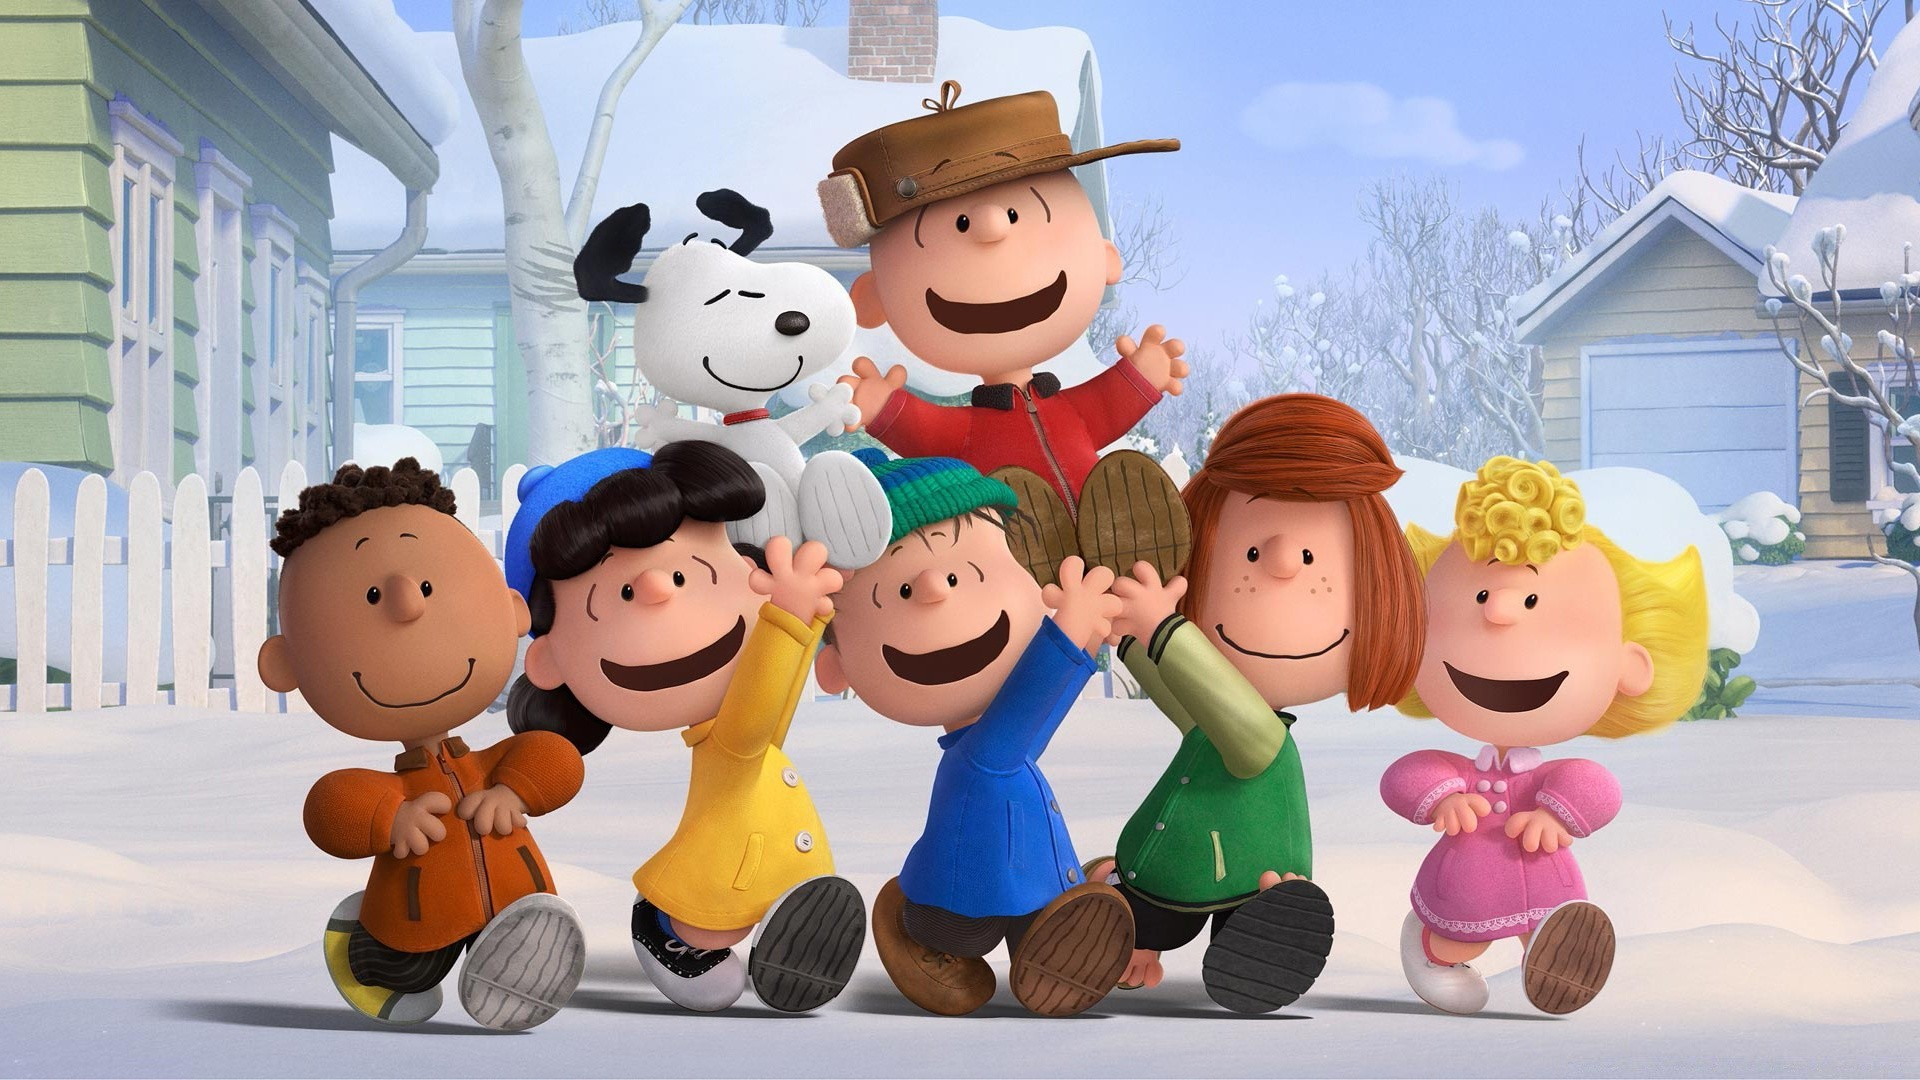 the peanuts gang 2015 movie. desktop wallpapers for free.